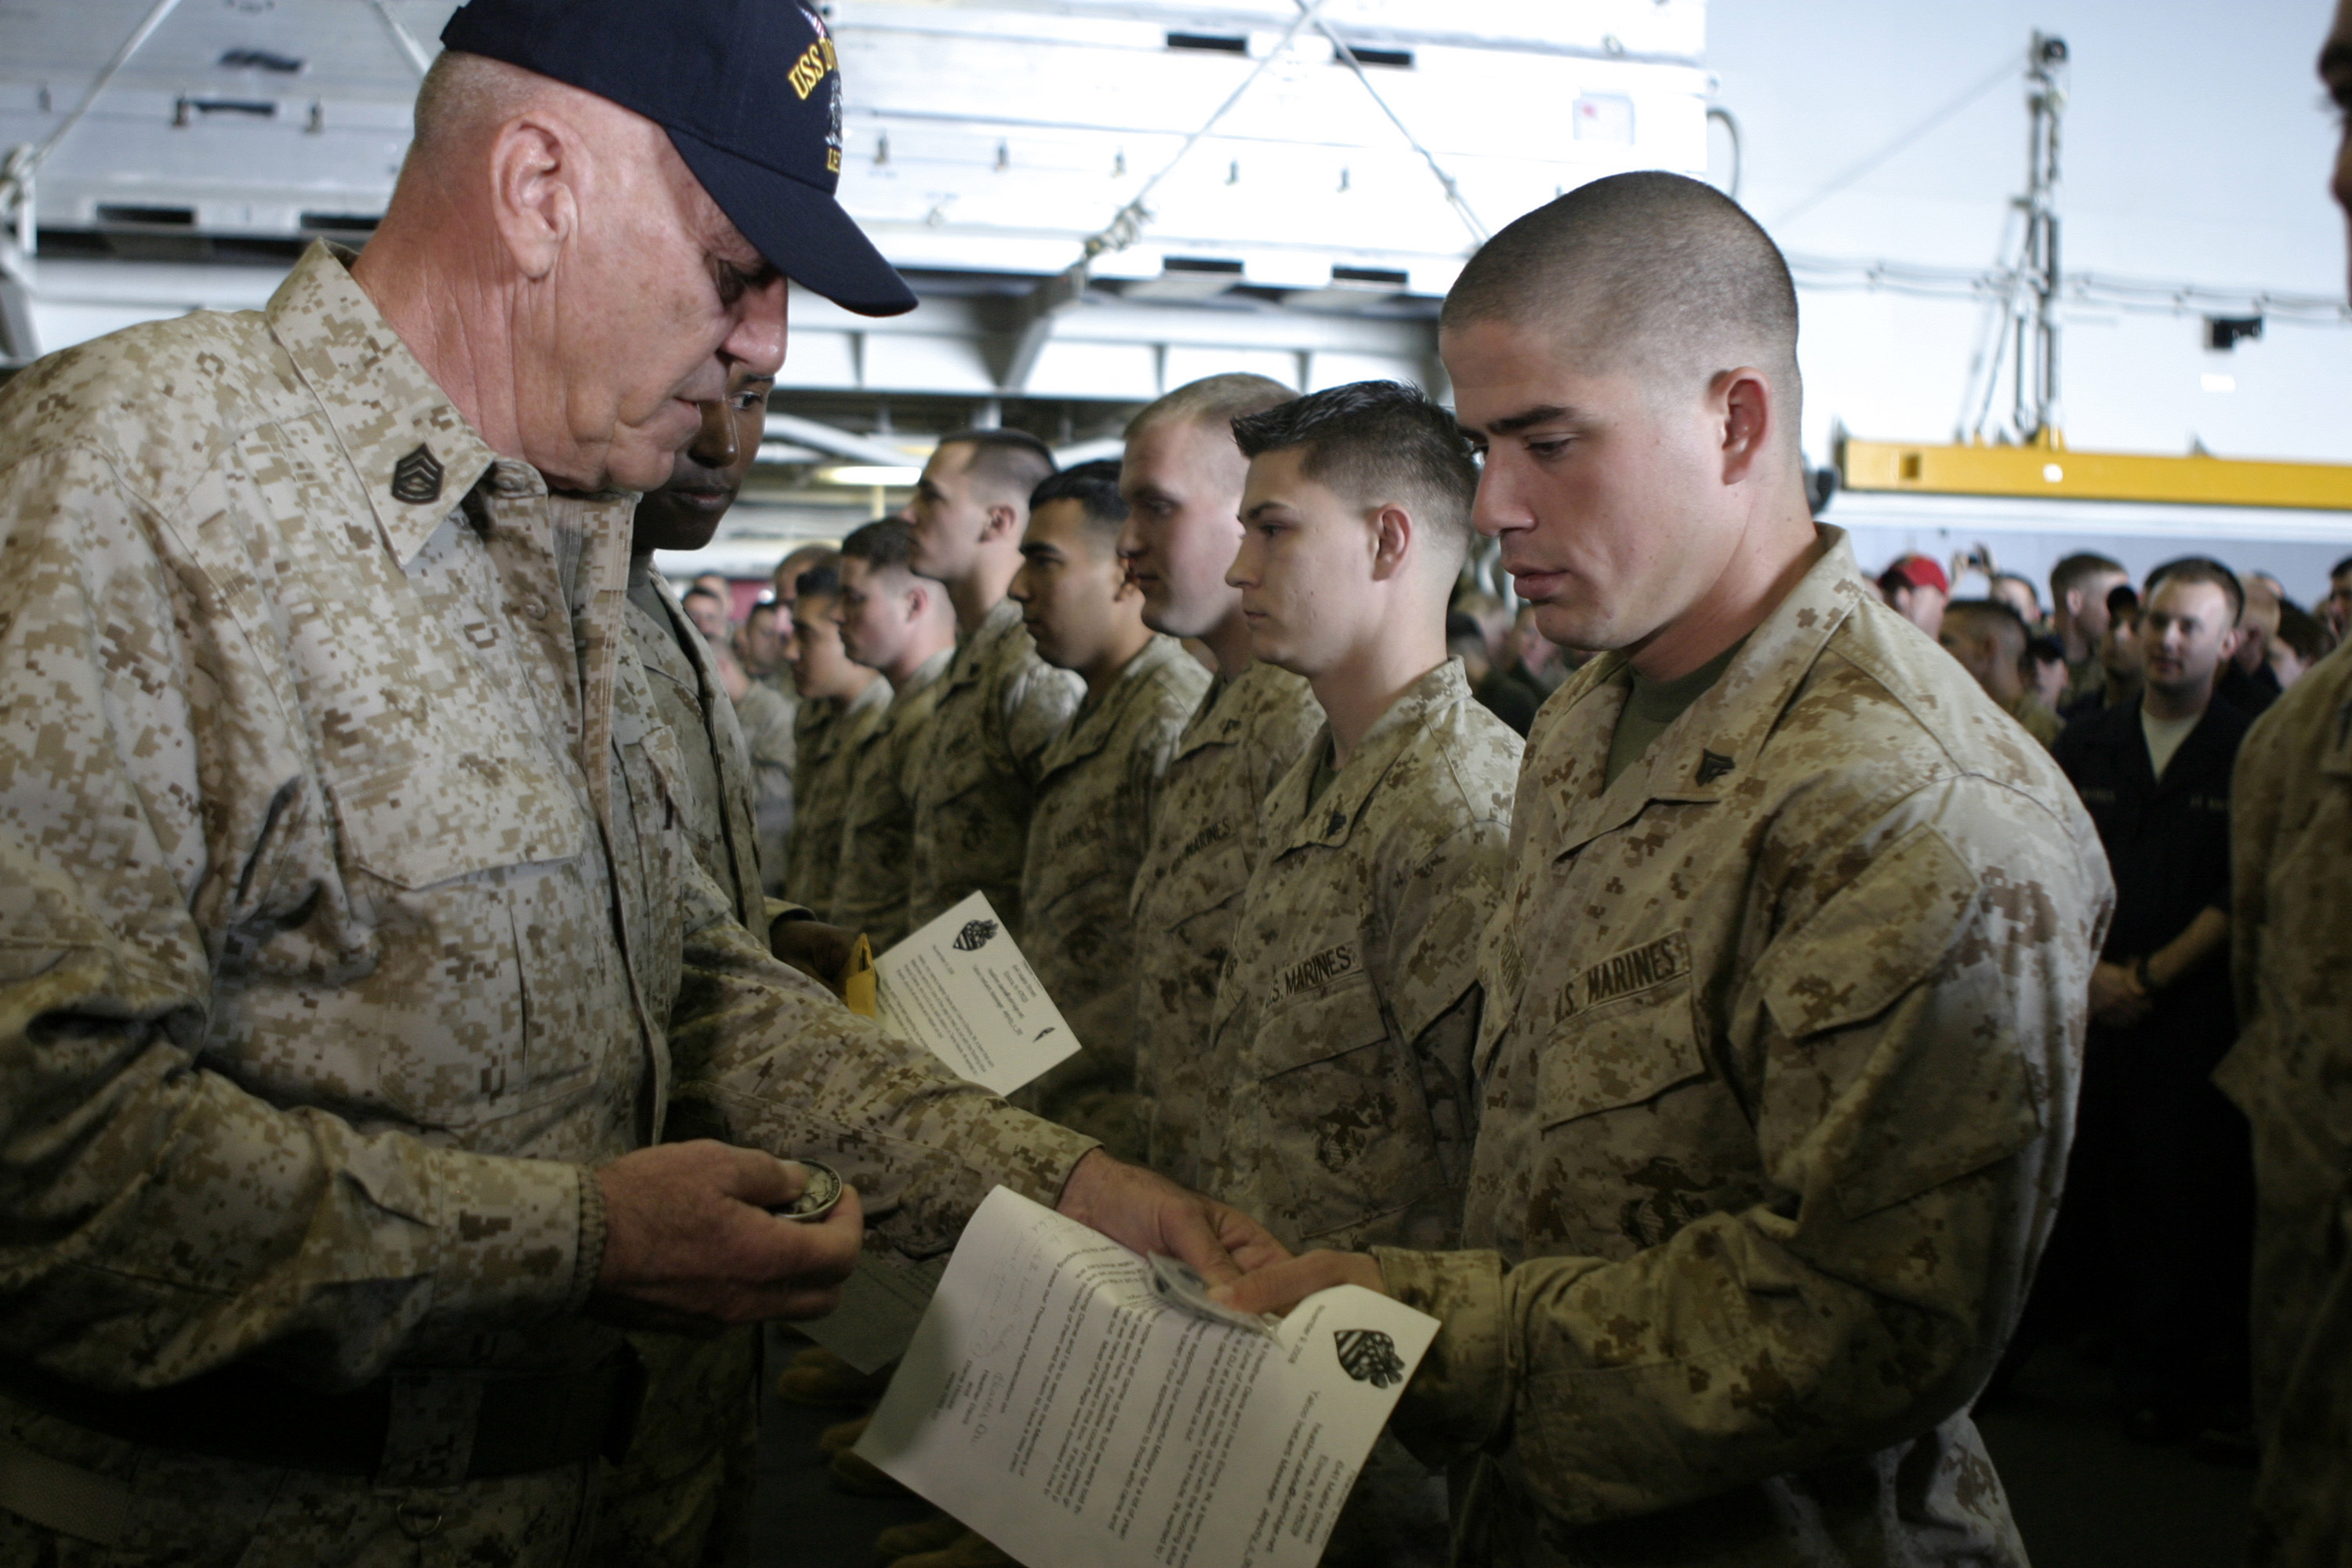 Actor and Marine Corps icon Gunnery Sgt. R. Lee Ermey hands Cpl. Trevor J. Blackburn, assigned to Battalion Landing Team 2/6, 26th Marine Expeditionary Unit, a small American flag aboard the amphibious assault ship USS Iwo Jima. The flag was sent from residents of Elnora, Ind., as a token of thanks after the Marines and Sailors from the 26th MEU helped reinforce the town's levees during a flood earlier this year. Ermey visited the USS Iwo Jima as a Moral, Welfare and Recreation event for deployed troops during the holiday season. (Cpl. Patrick M. Johnson-Campbell/Marine)